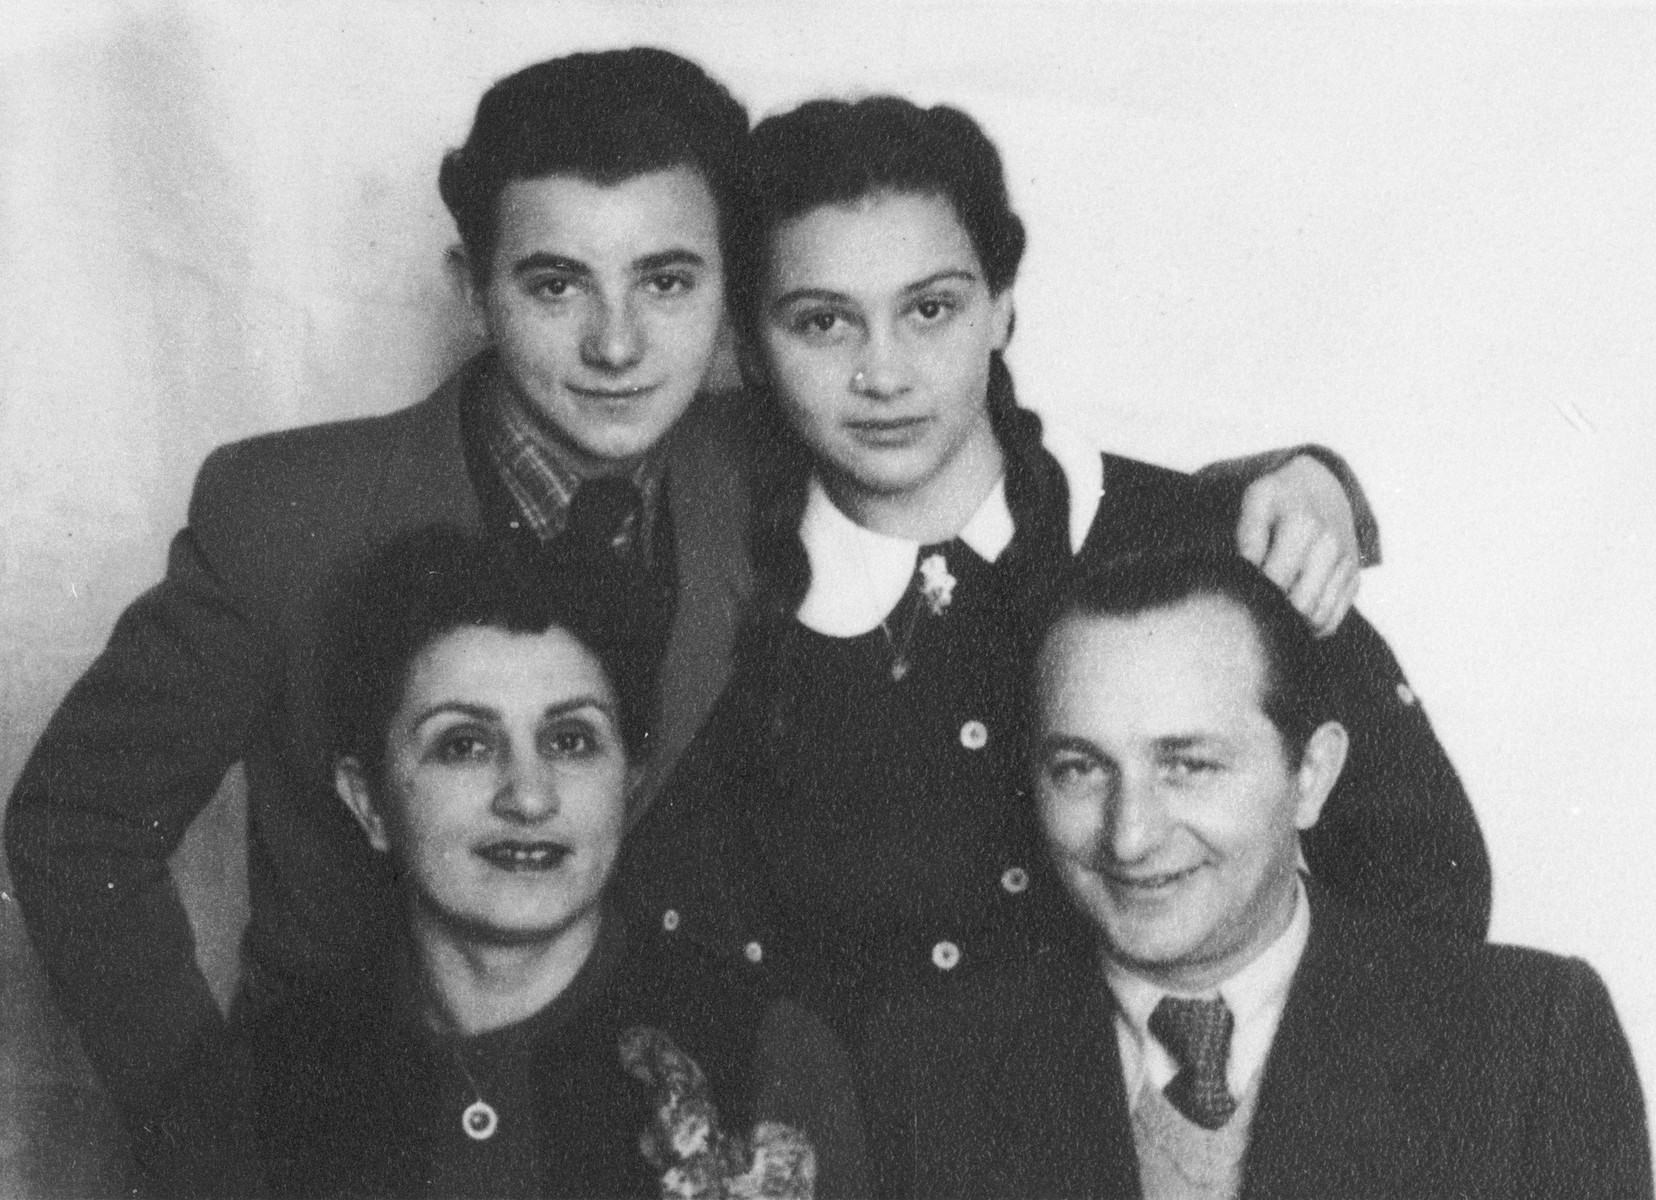 Portrait of the Eichenholz family in the Krakow ghetto.  Pictured are Lusia and Henryk Eichenholz with their children Bronislaw and Dziunia.